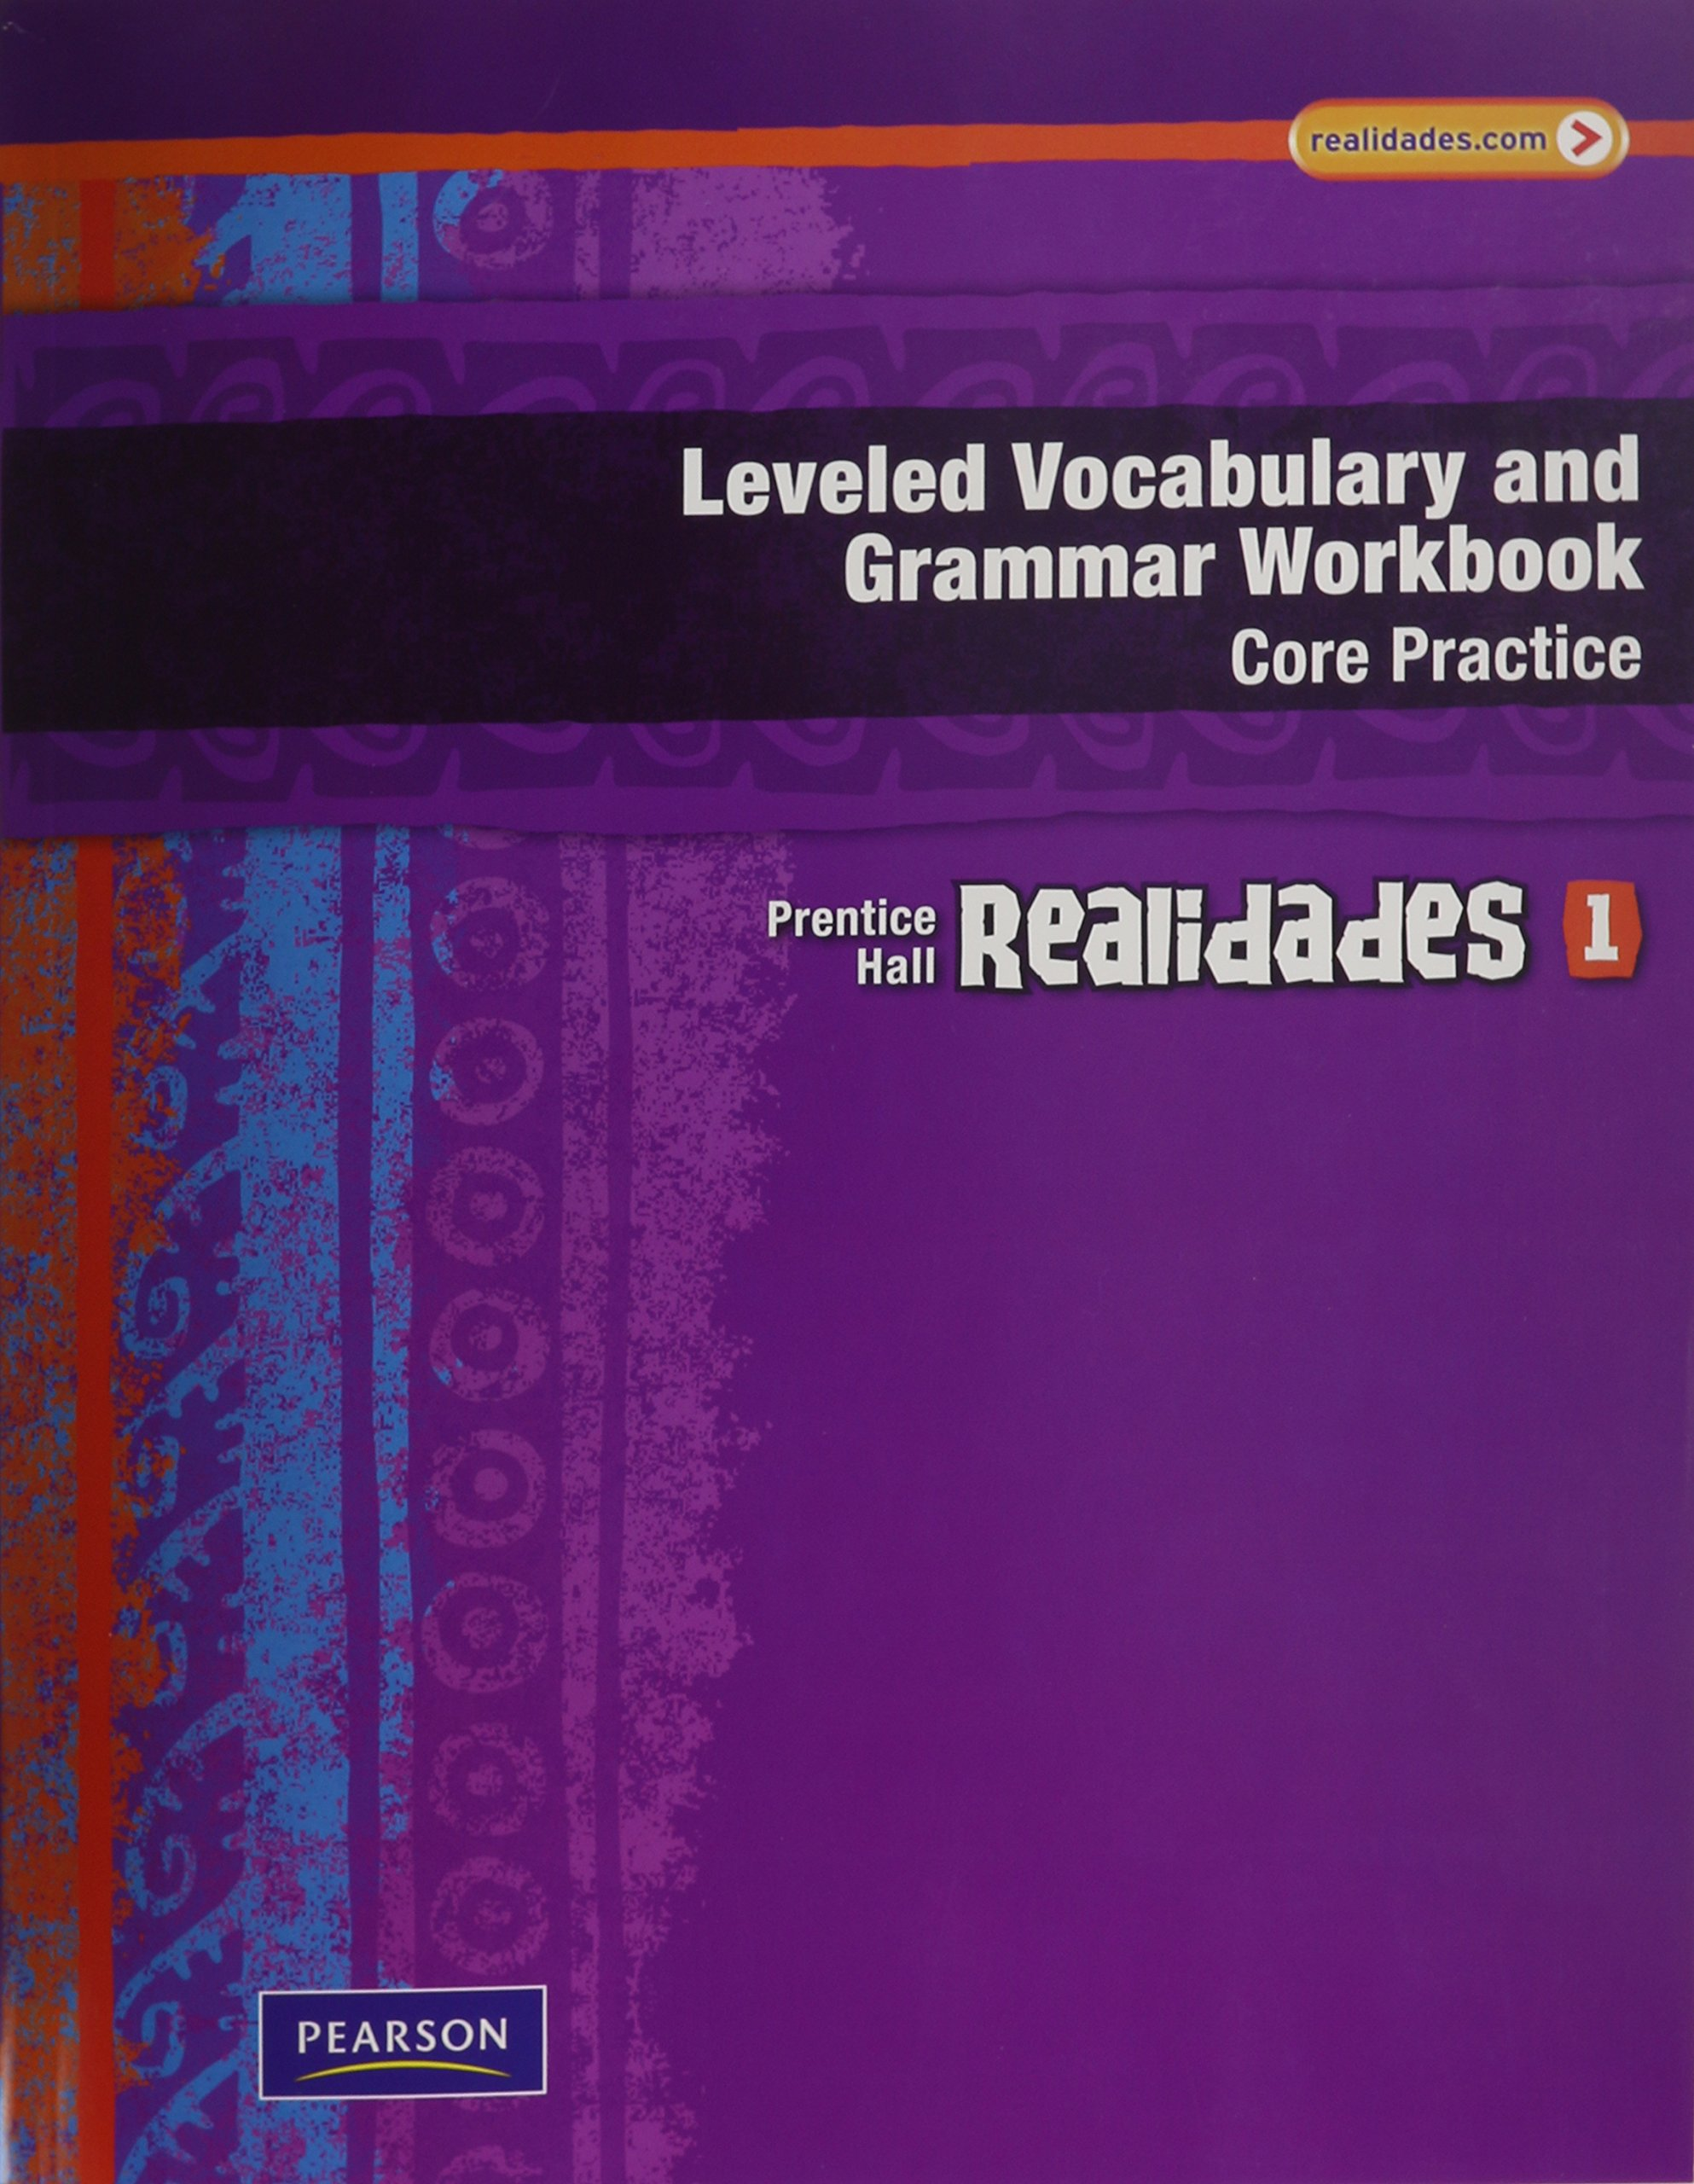 REALIDADES LEVELED VOCABULARY AND GRMR WORKBOOK (CORE & GUIDED PRACTICE) LEVEL 1 COPYRIGHT 2011